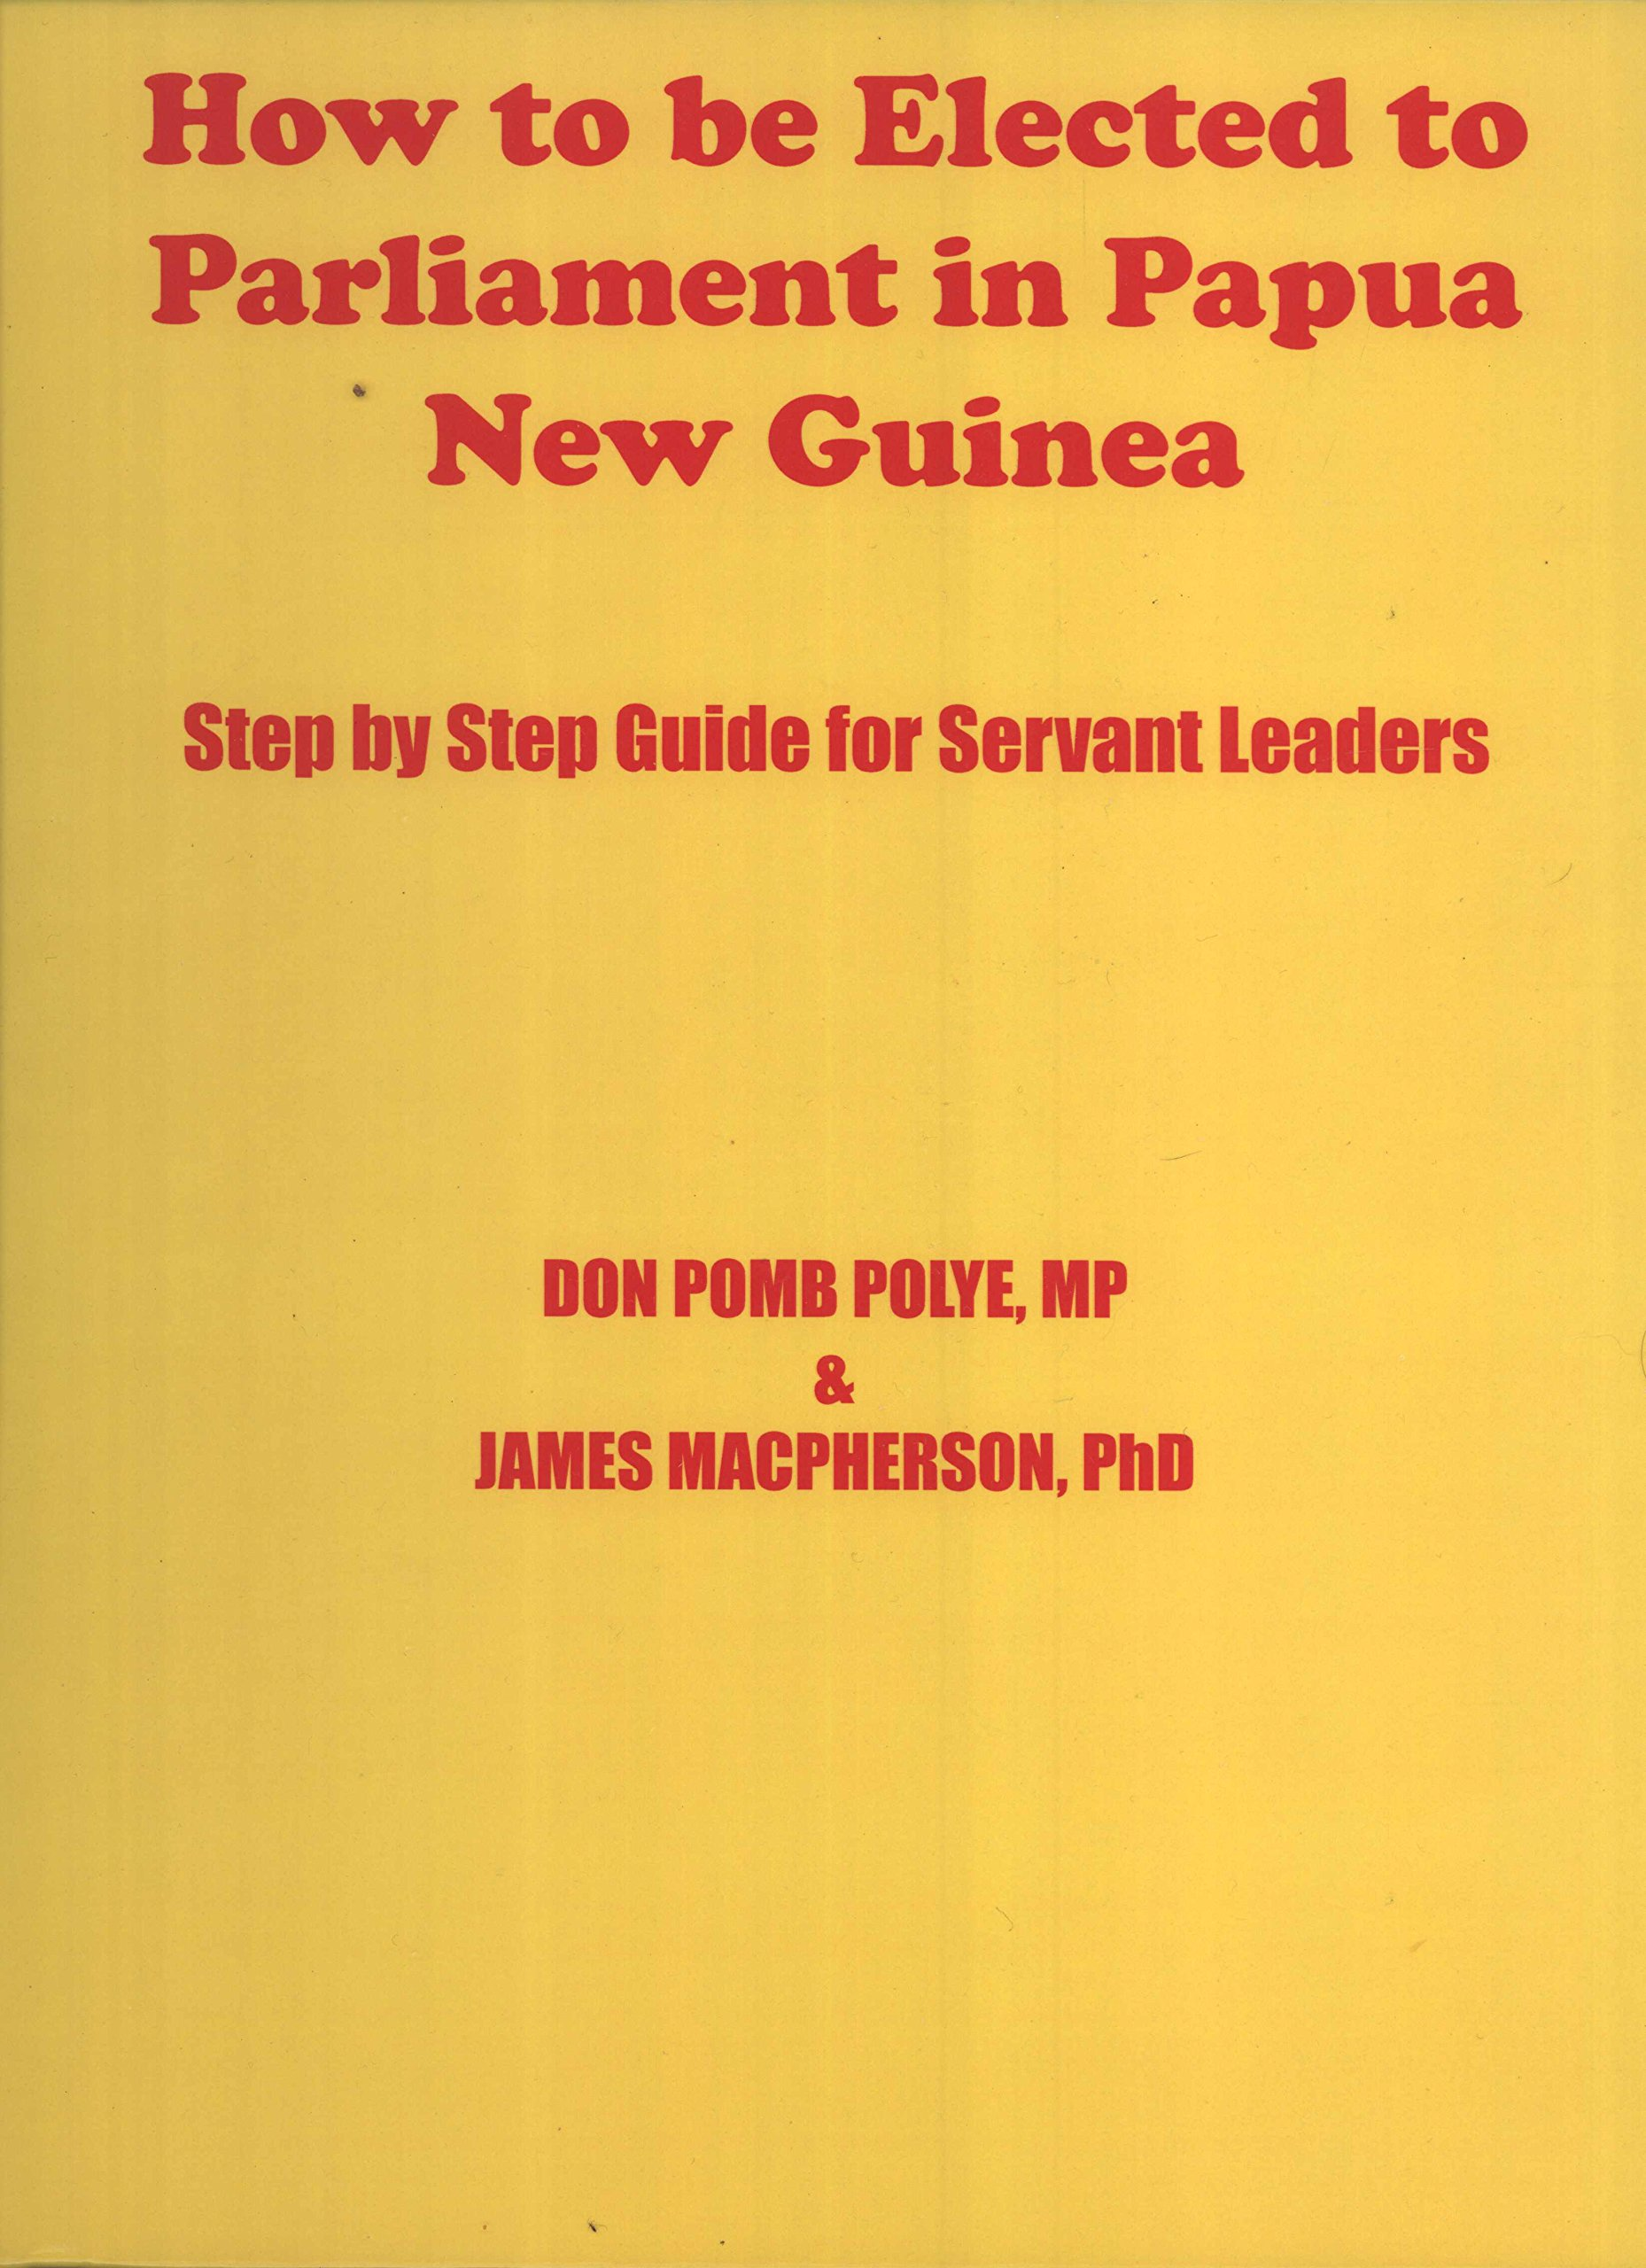 Read Online How To Be Elected To Parliament In Papua New Guinea: Step by Step Guide for Servant Leaders pdf